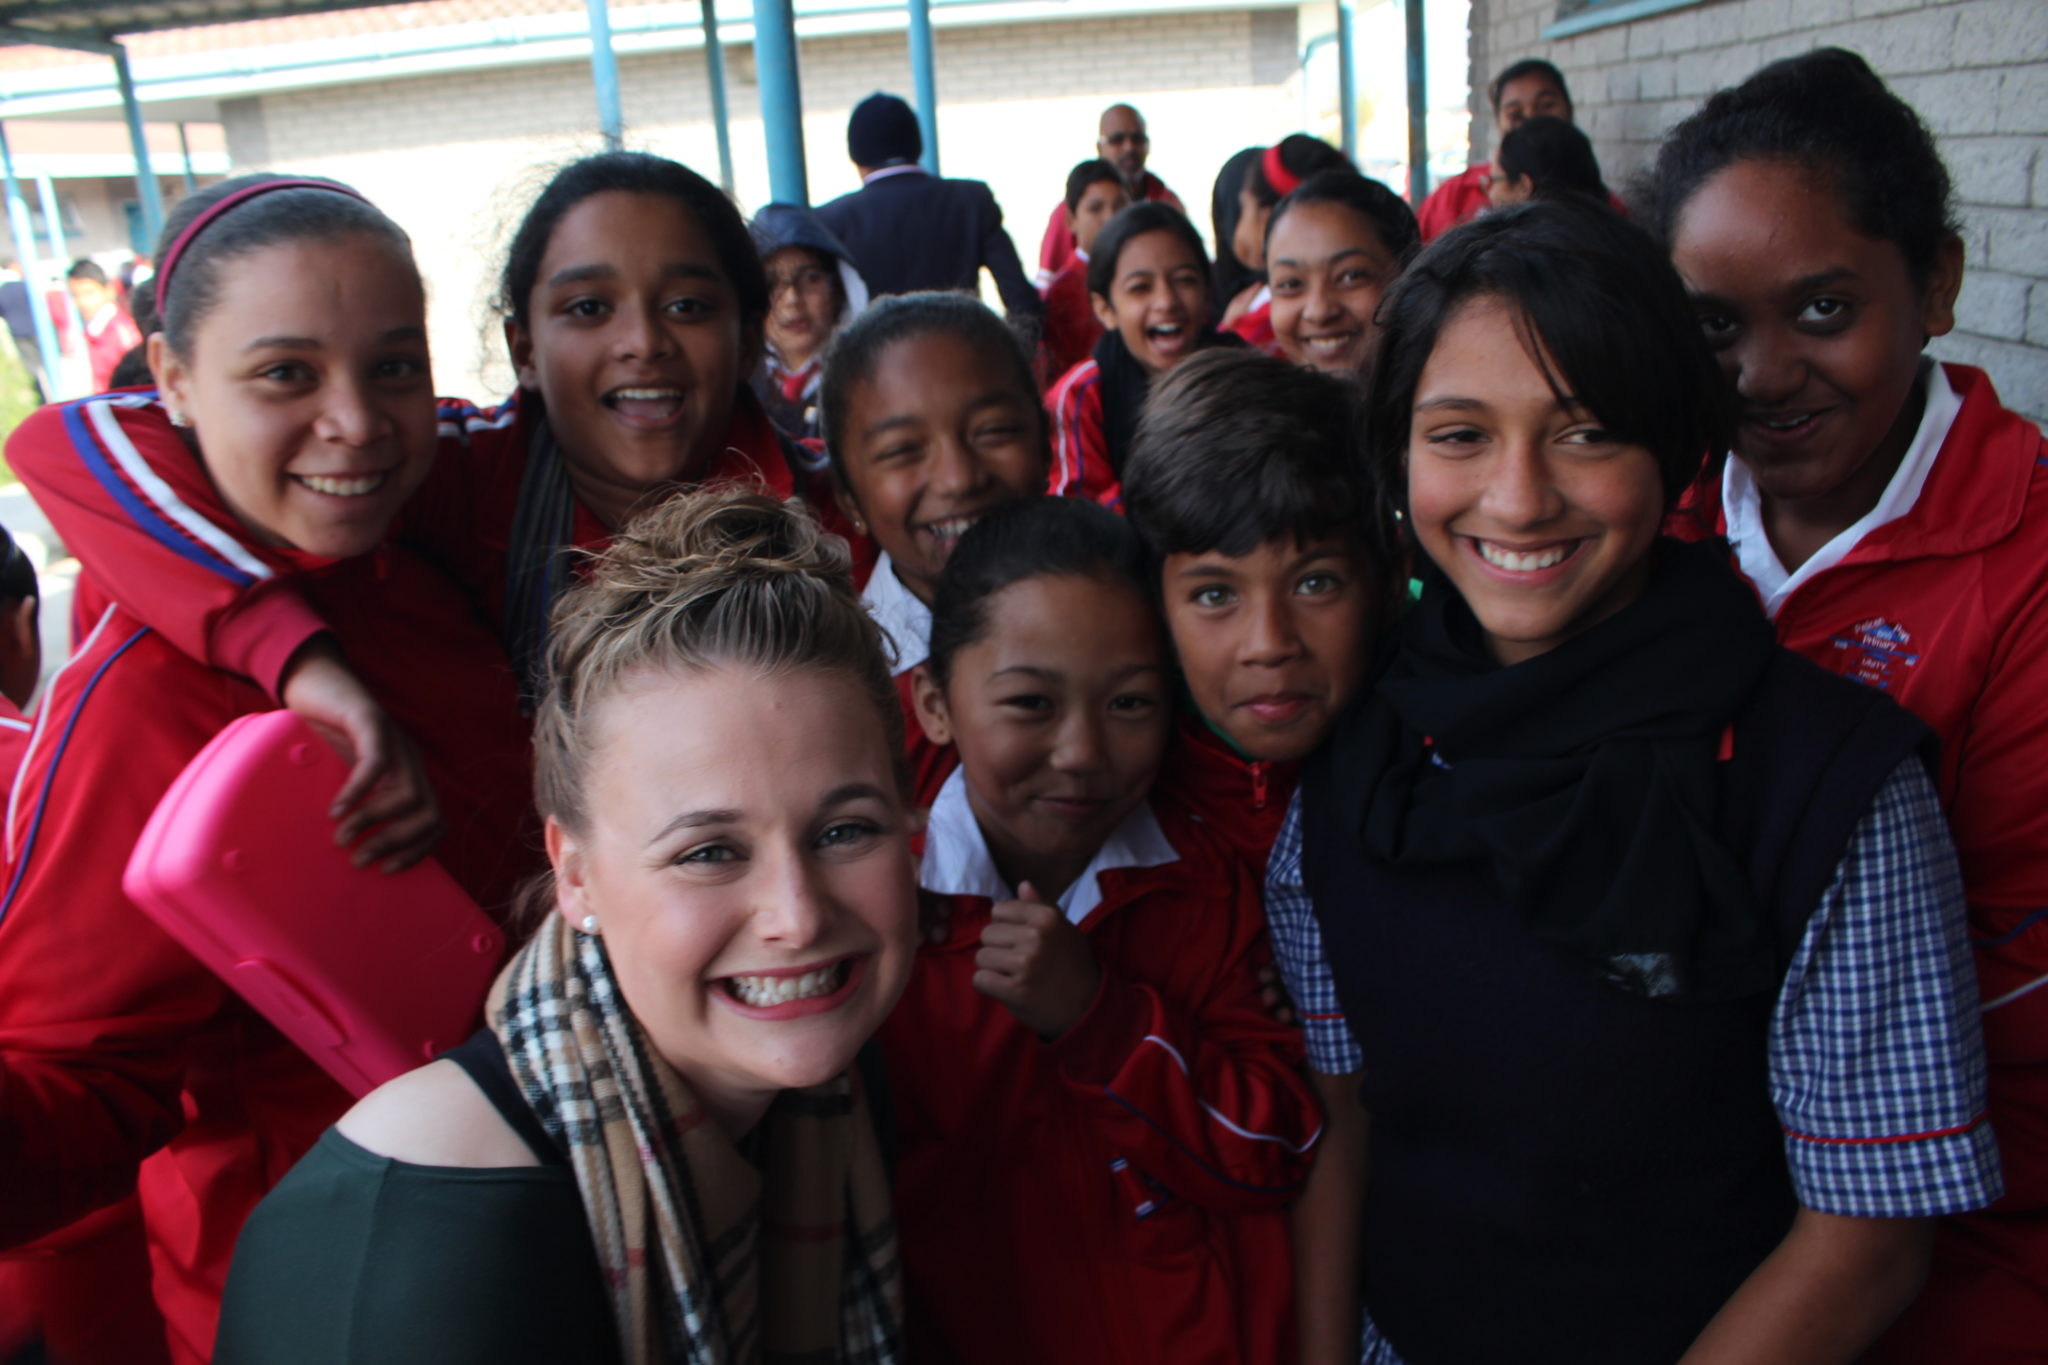 A Mercer student is pictured with local students during a Mercer on Mission trip to South Africa.